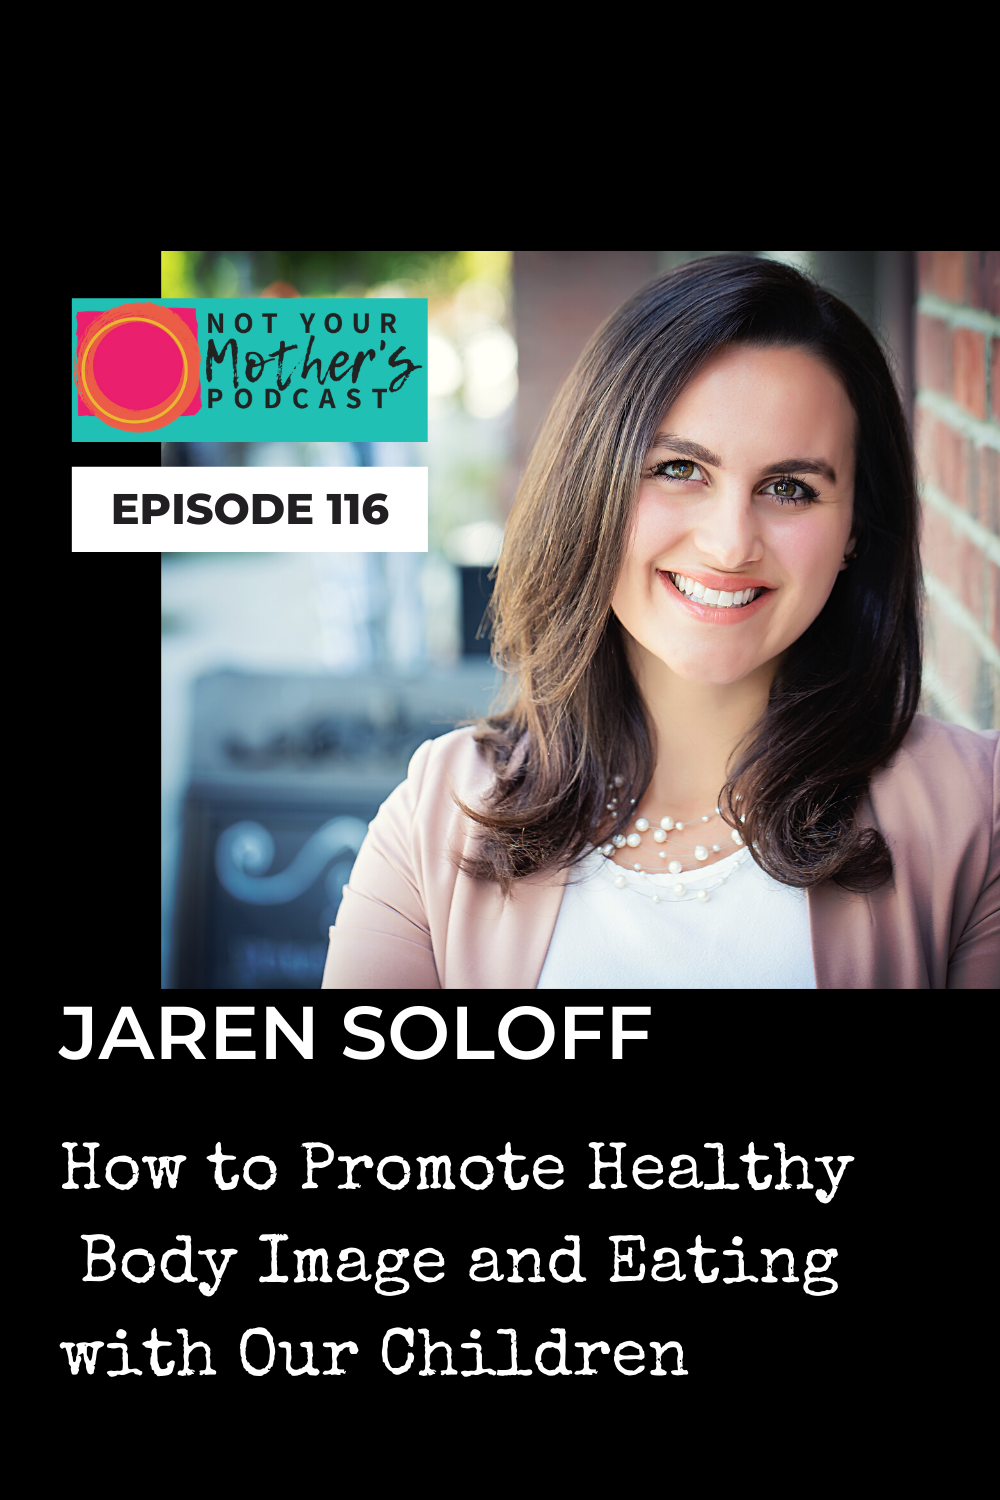 How to Promote Healthy Body Image and Eating with Our Children with Jaren Soloff PIN